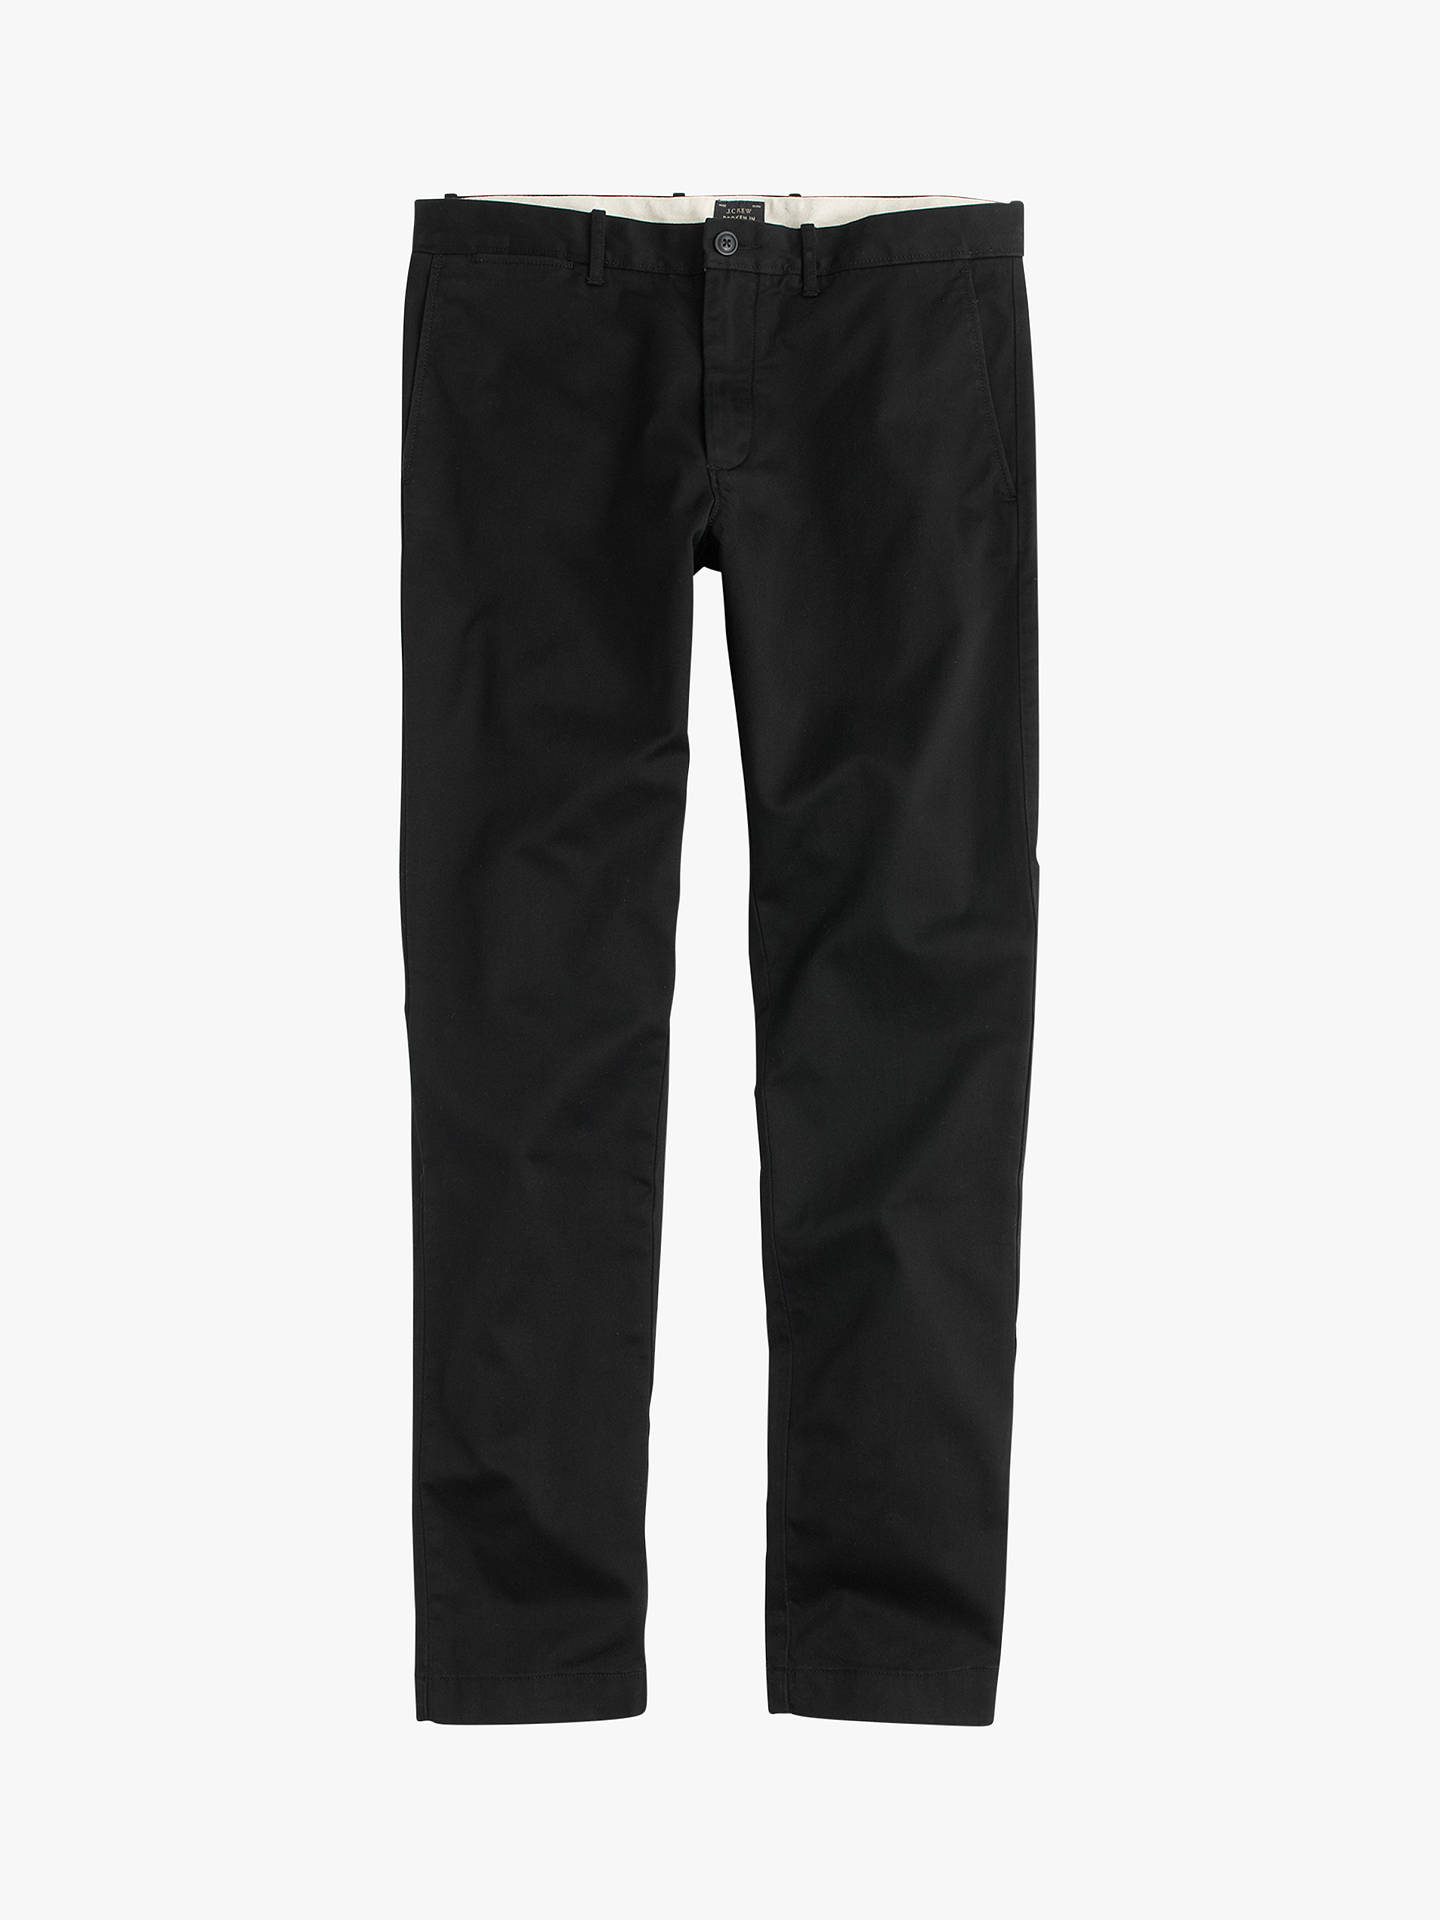 eaf1c73cc10b J.Crew Slim Fit Stretch Chinos at John Lewis   Partners